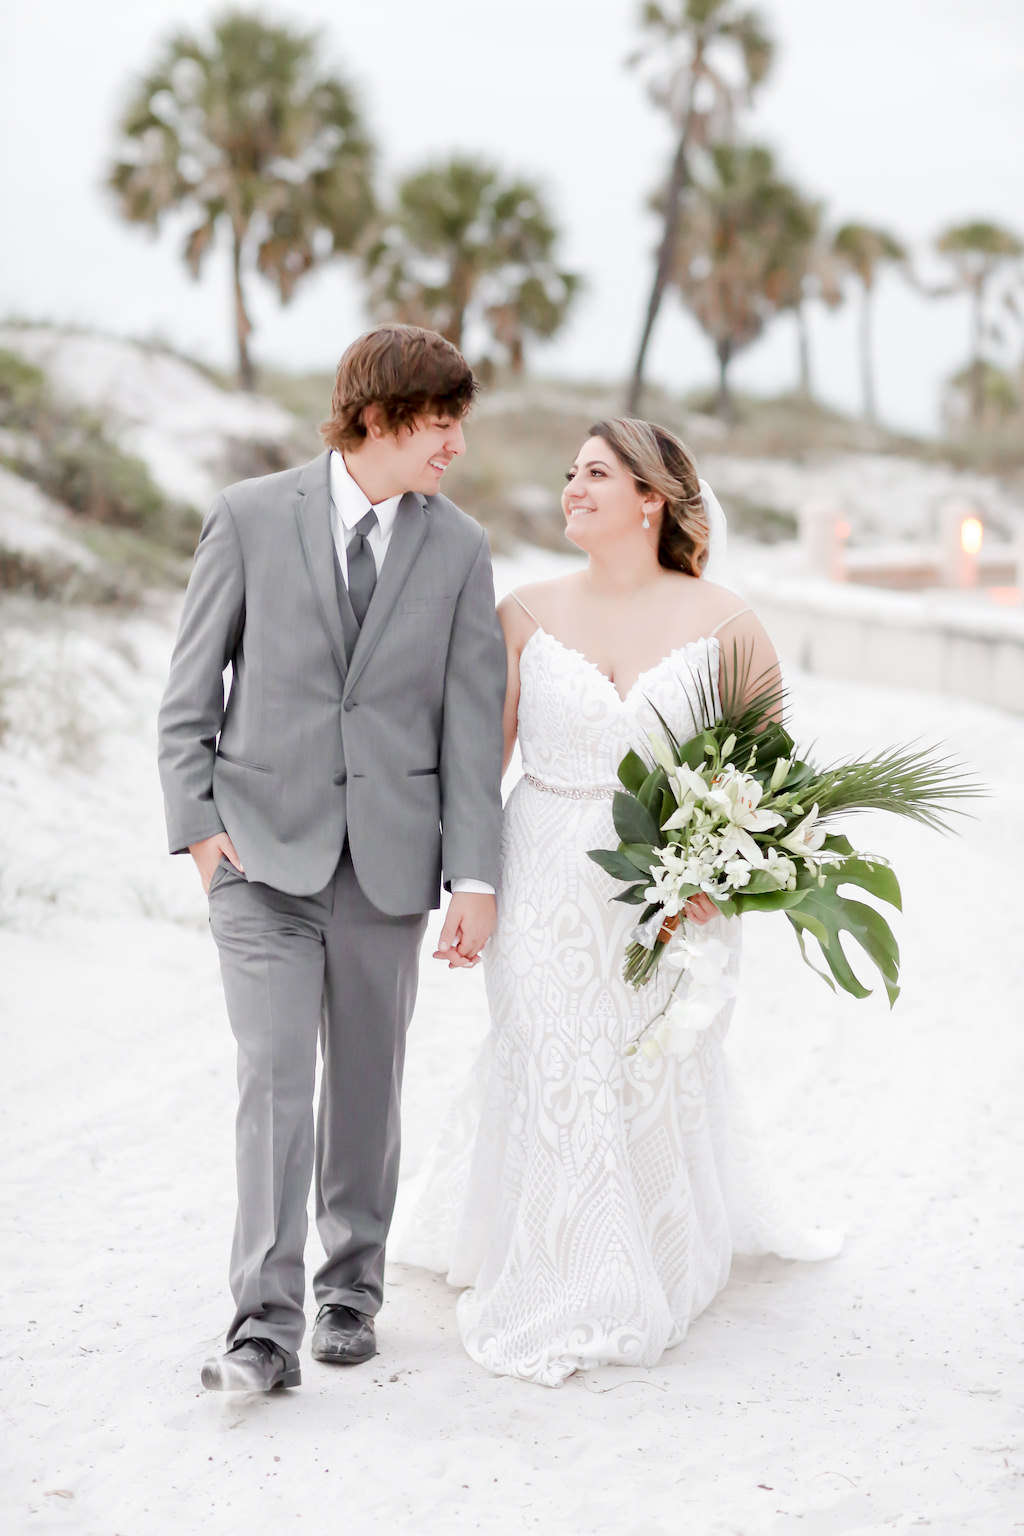 Clearwater Beach Bride and Groom Wedding Portrait, Bride in Fitted Spaghetti Strap Lace V Neckline Wedding Dress with Rhinestone Belt Holding Tropical Monstera Leaf, Areca Leaves and White Orchid Floral Bouquet   Tampa Bay Wedding Photographer Lifelong Photography Studios